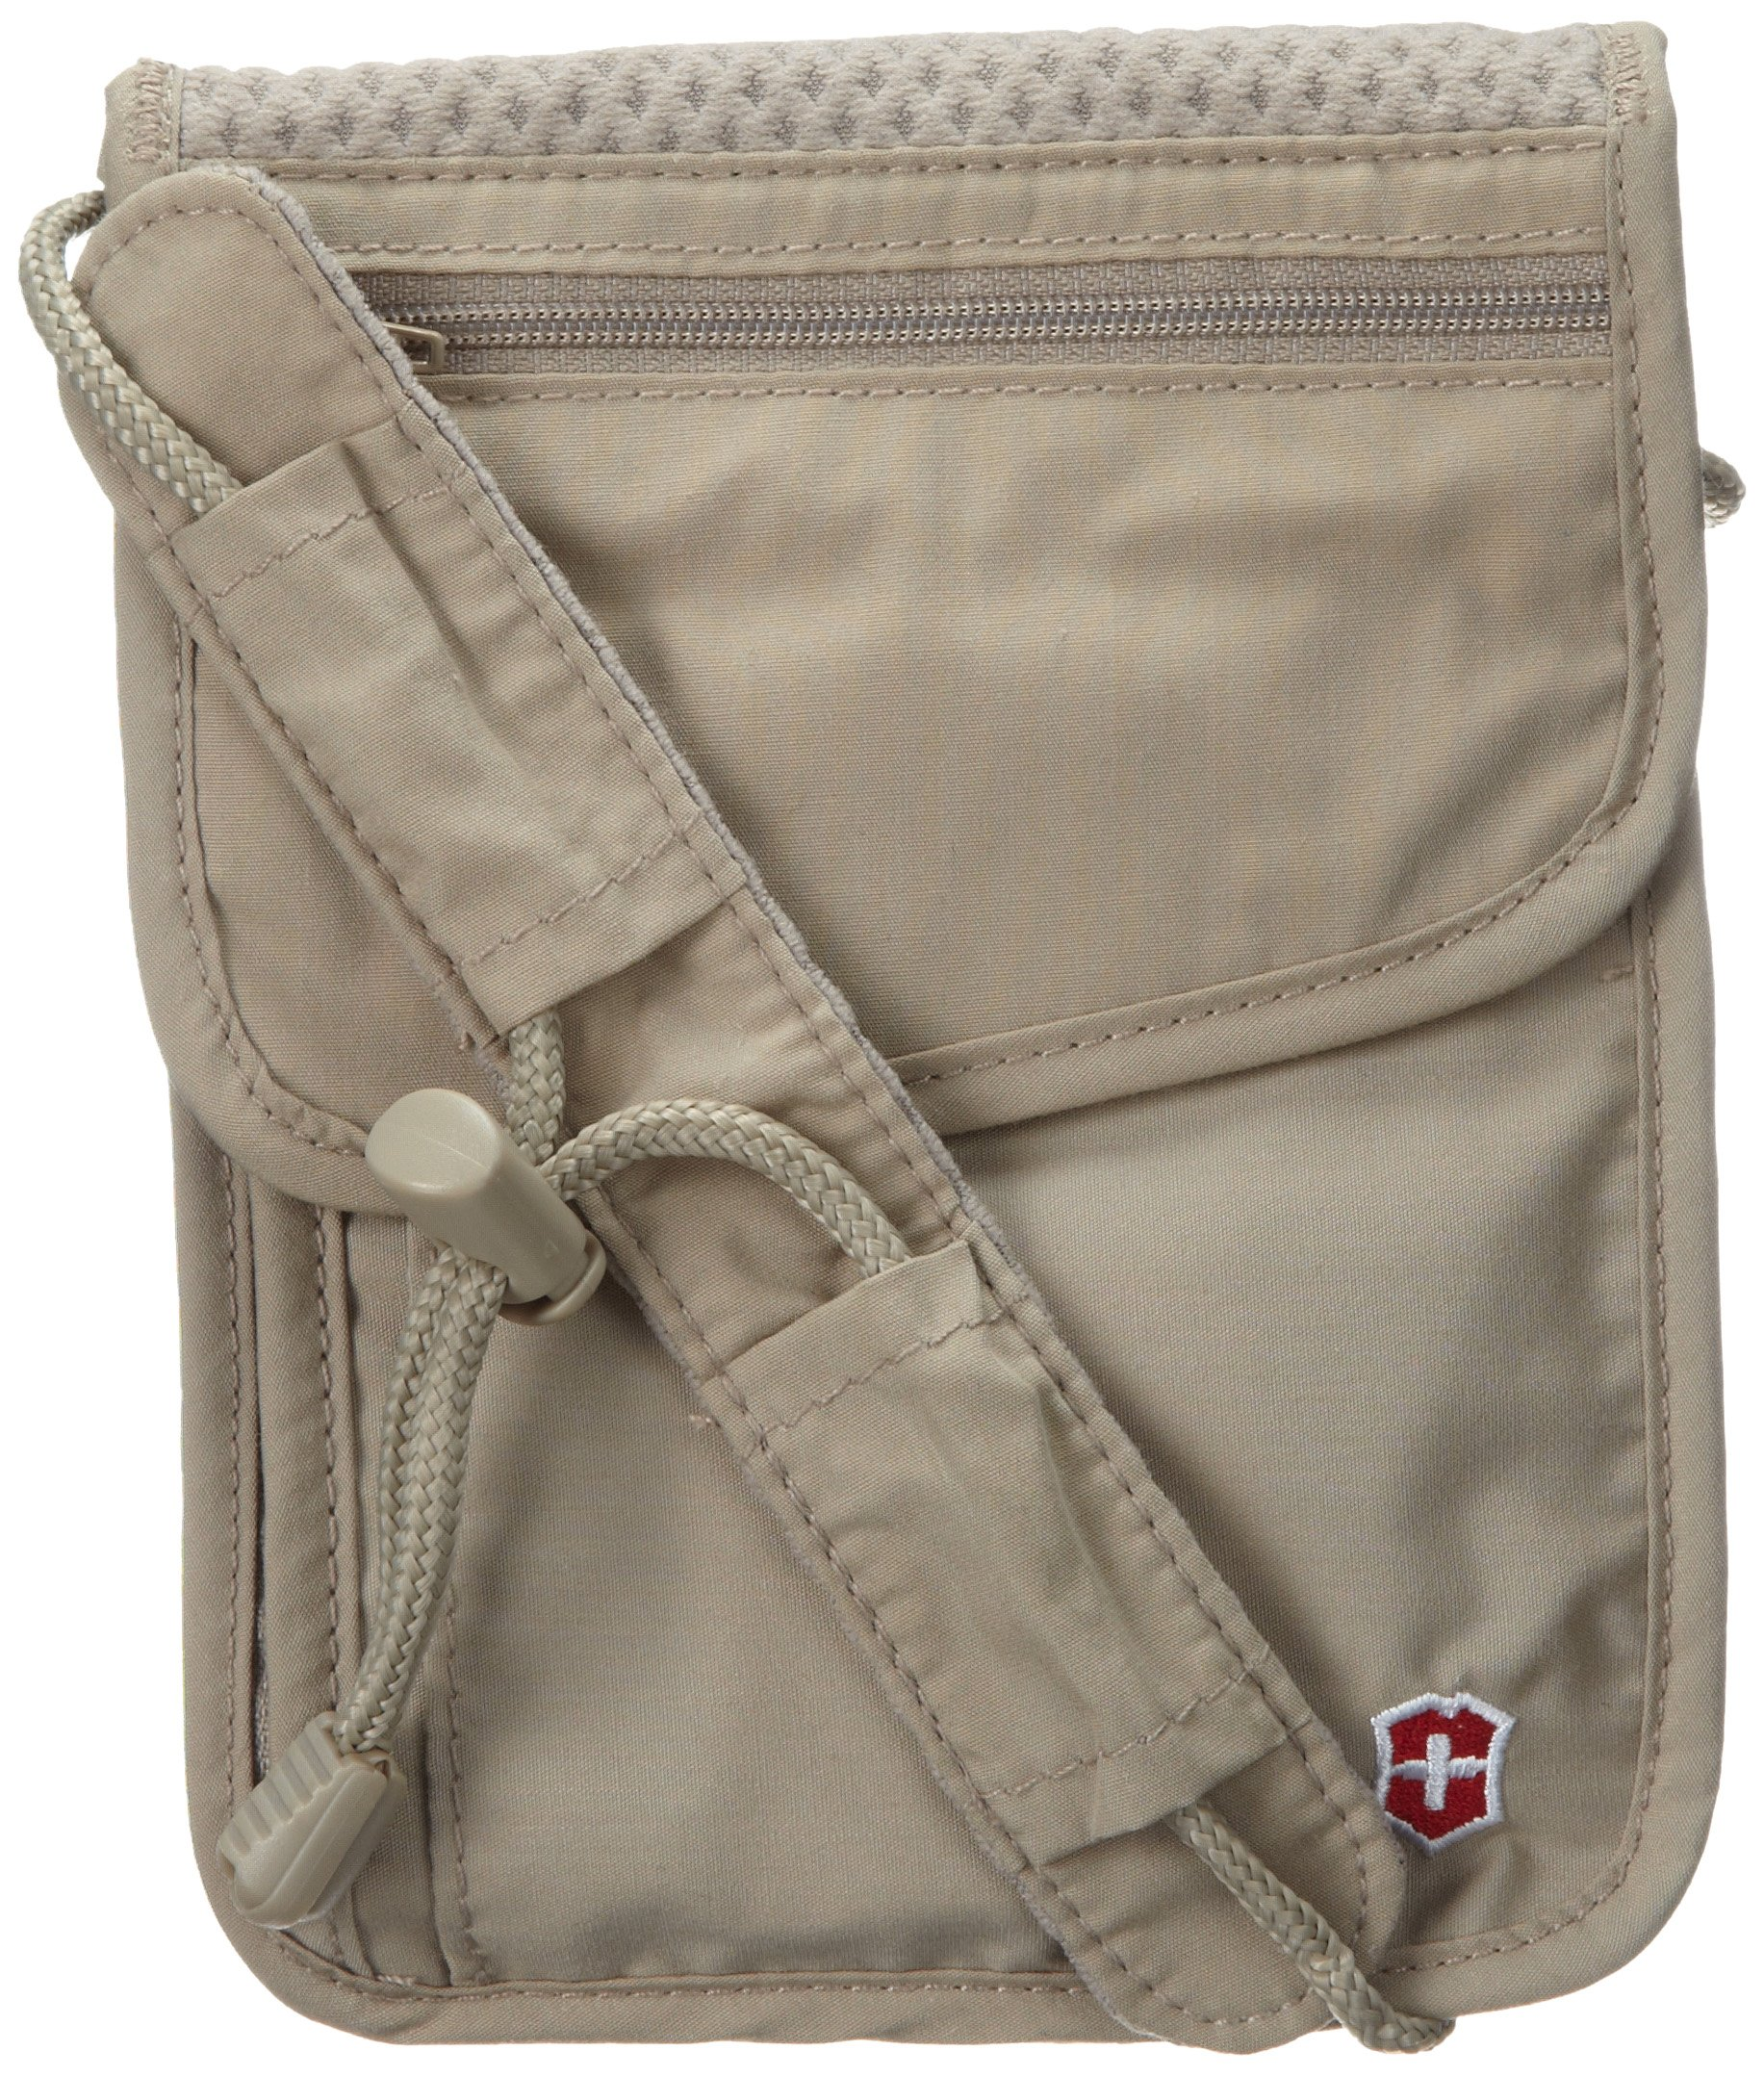 Victorinox  Deluxe Concealed Security Pouch,Nude,One Size